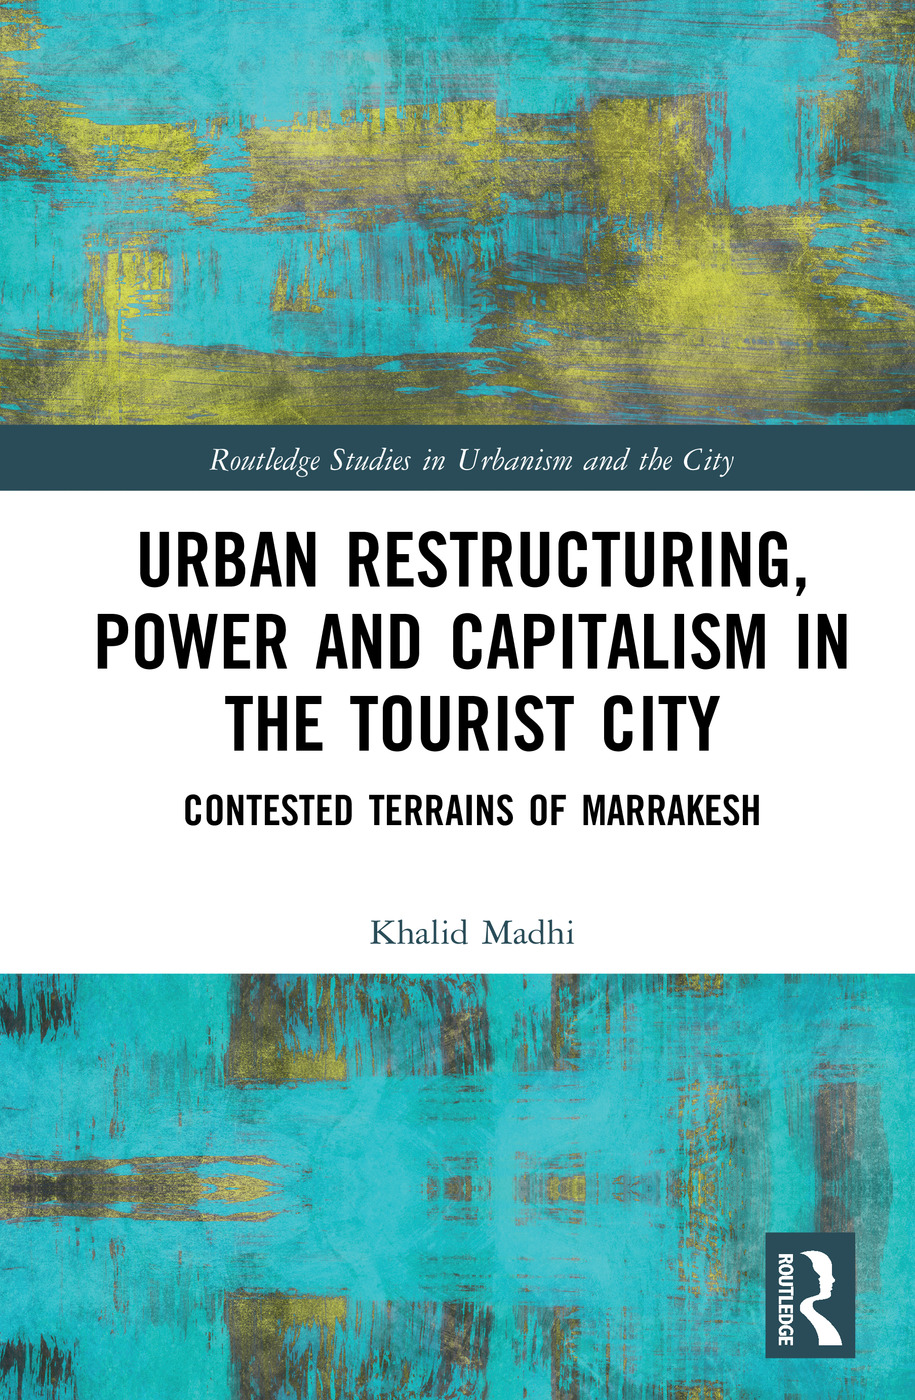 Urban Restructuring, Power and Capitalism in the Tourist City: Contested Terrains of Marrakesh, 1st Edition (Hardback) book cover